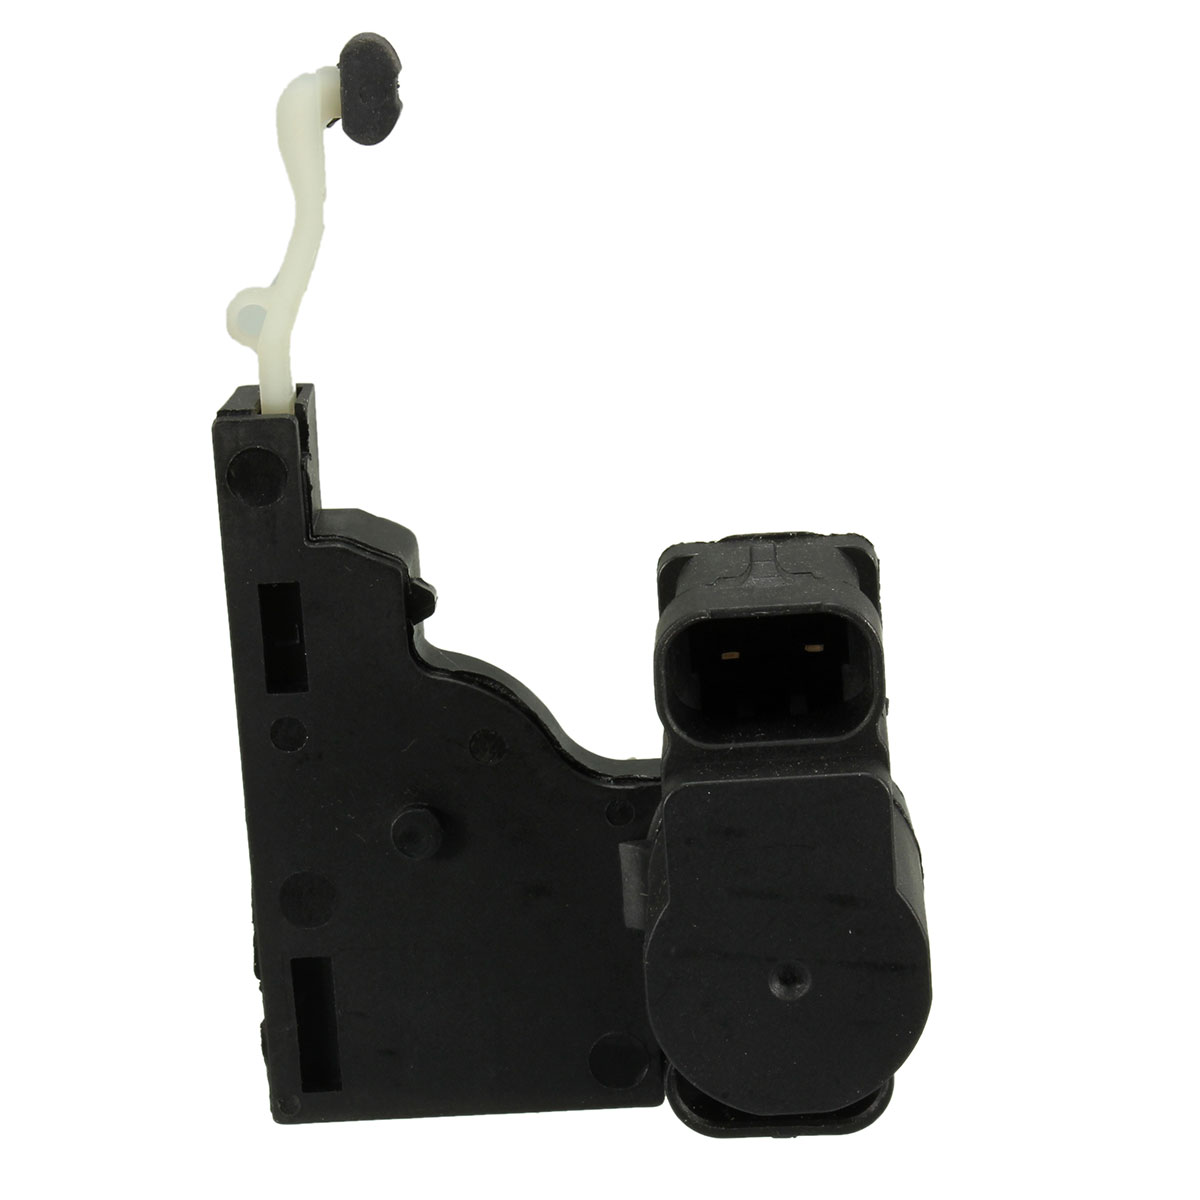 New Driver Side Left Hand Car Auto Power Door Lock Actuator for Chevy GMC Buick